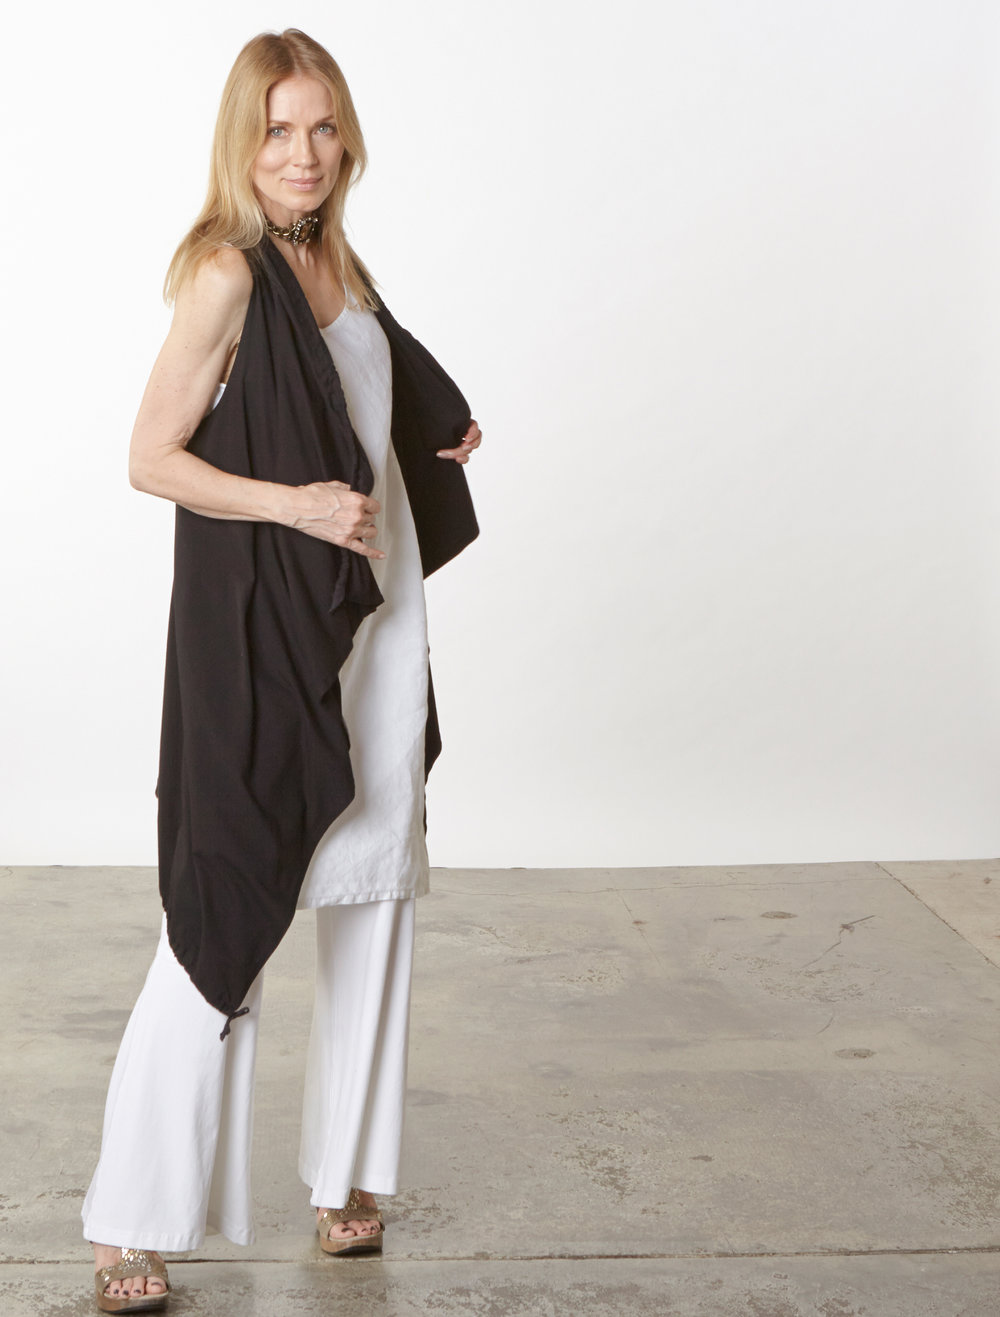 Eve Vest in Black, Oscar Pant in White Organic Bamboo Cotton, Luella Dress in White Light Linen